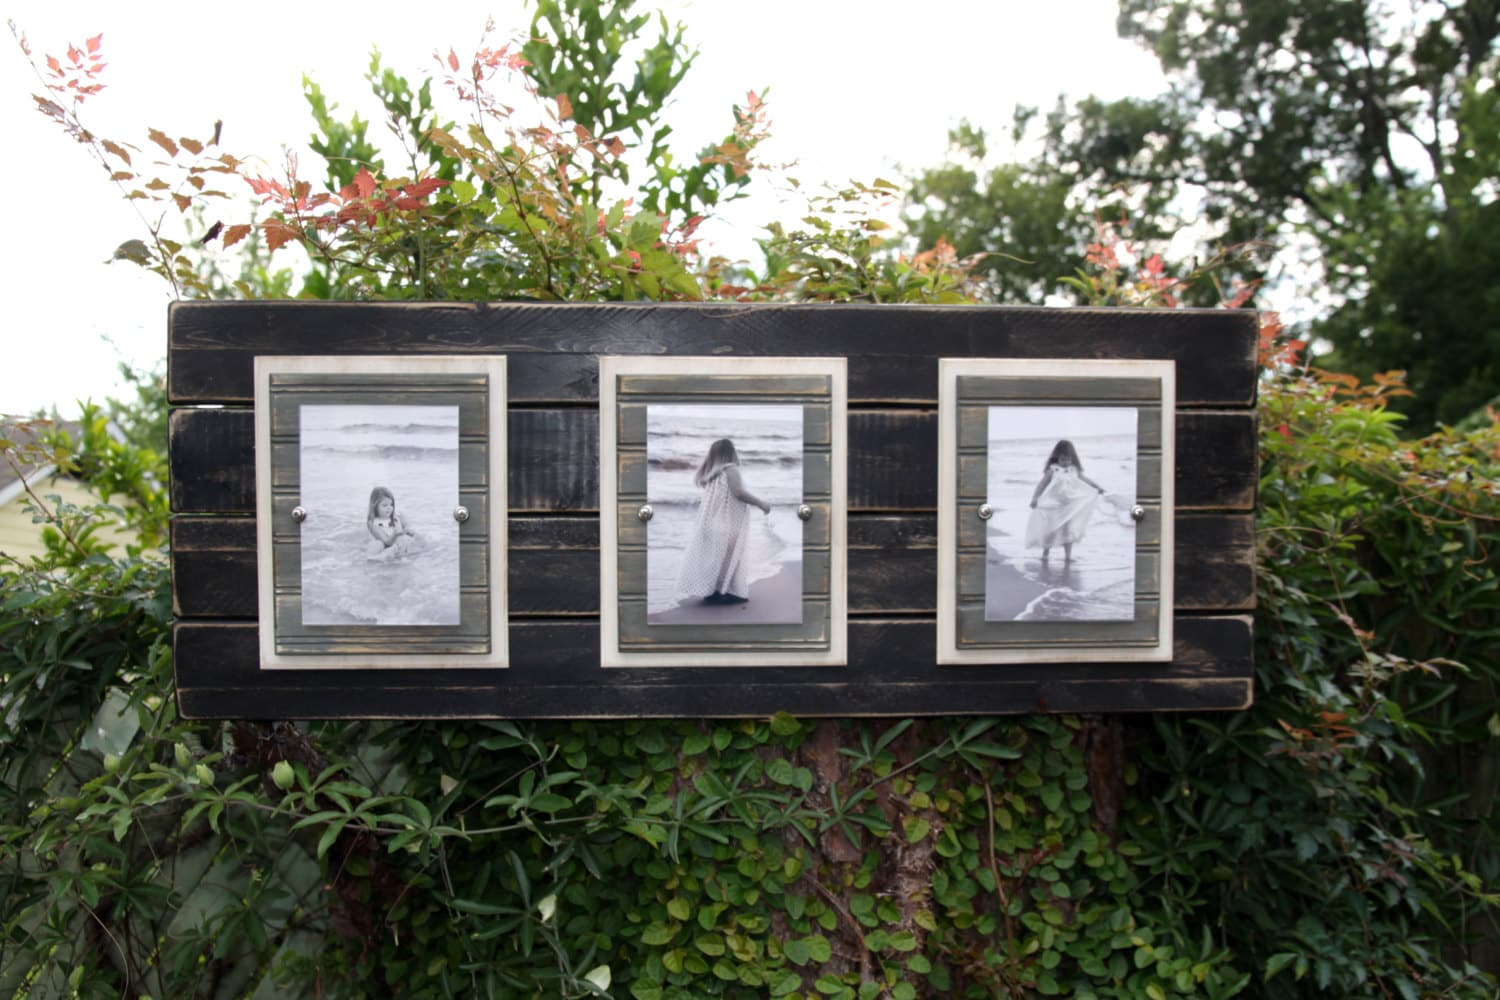 wood plank frame wooden plank frame plank wall art distressed triple 5x7 or 4x6 photos black ivory and grey